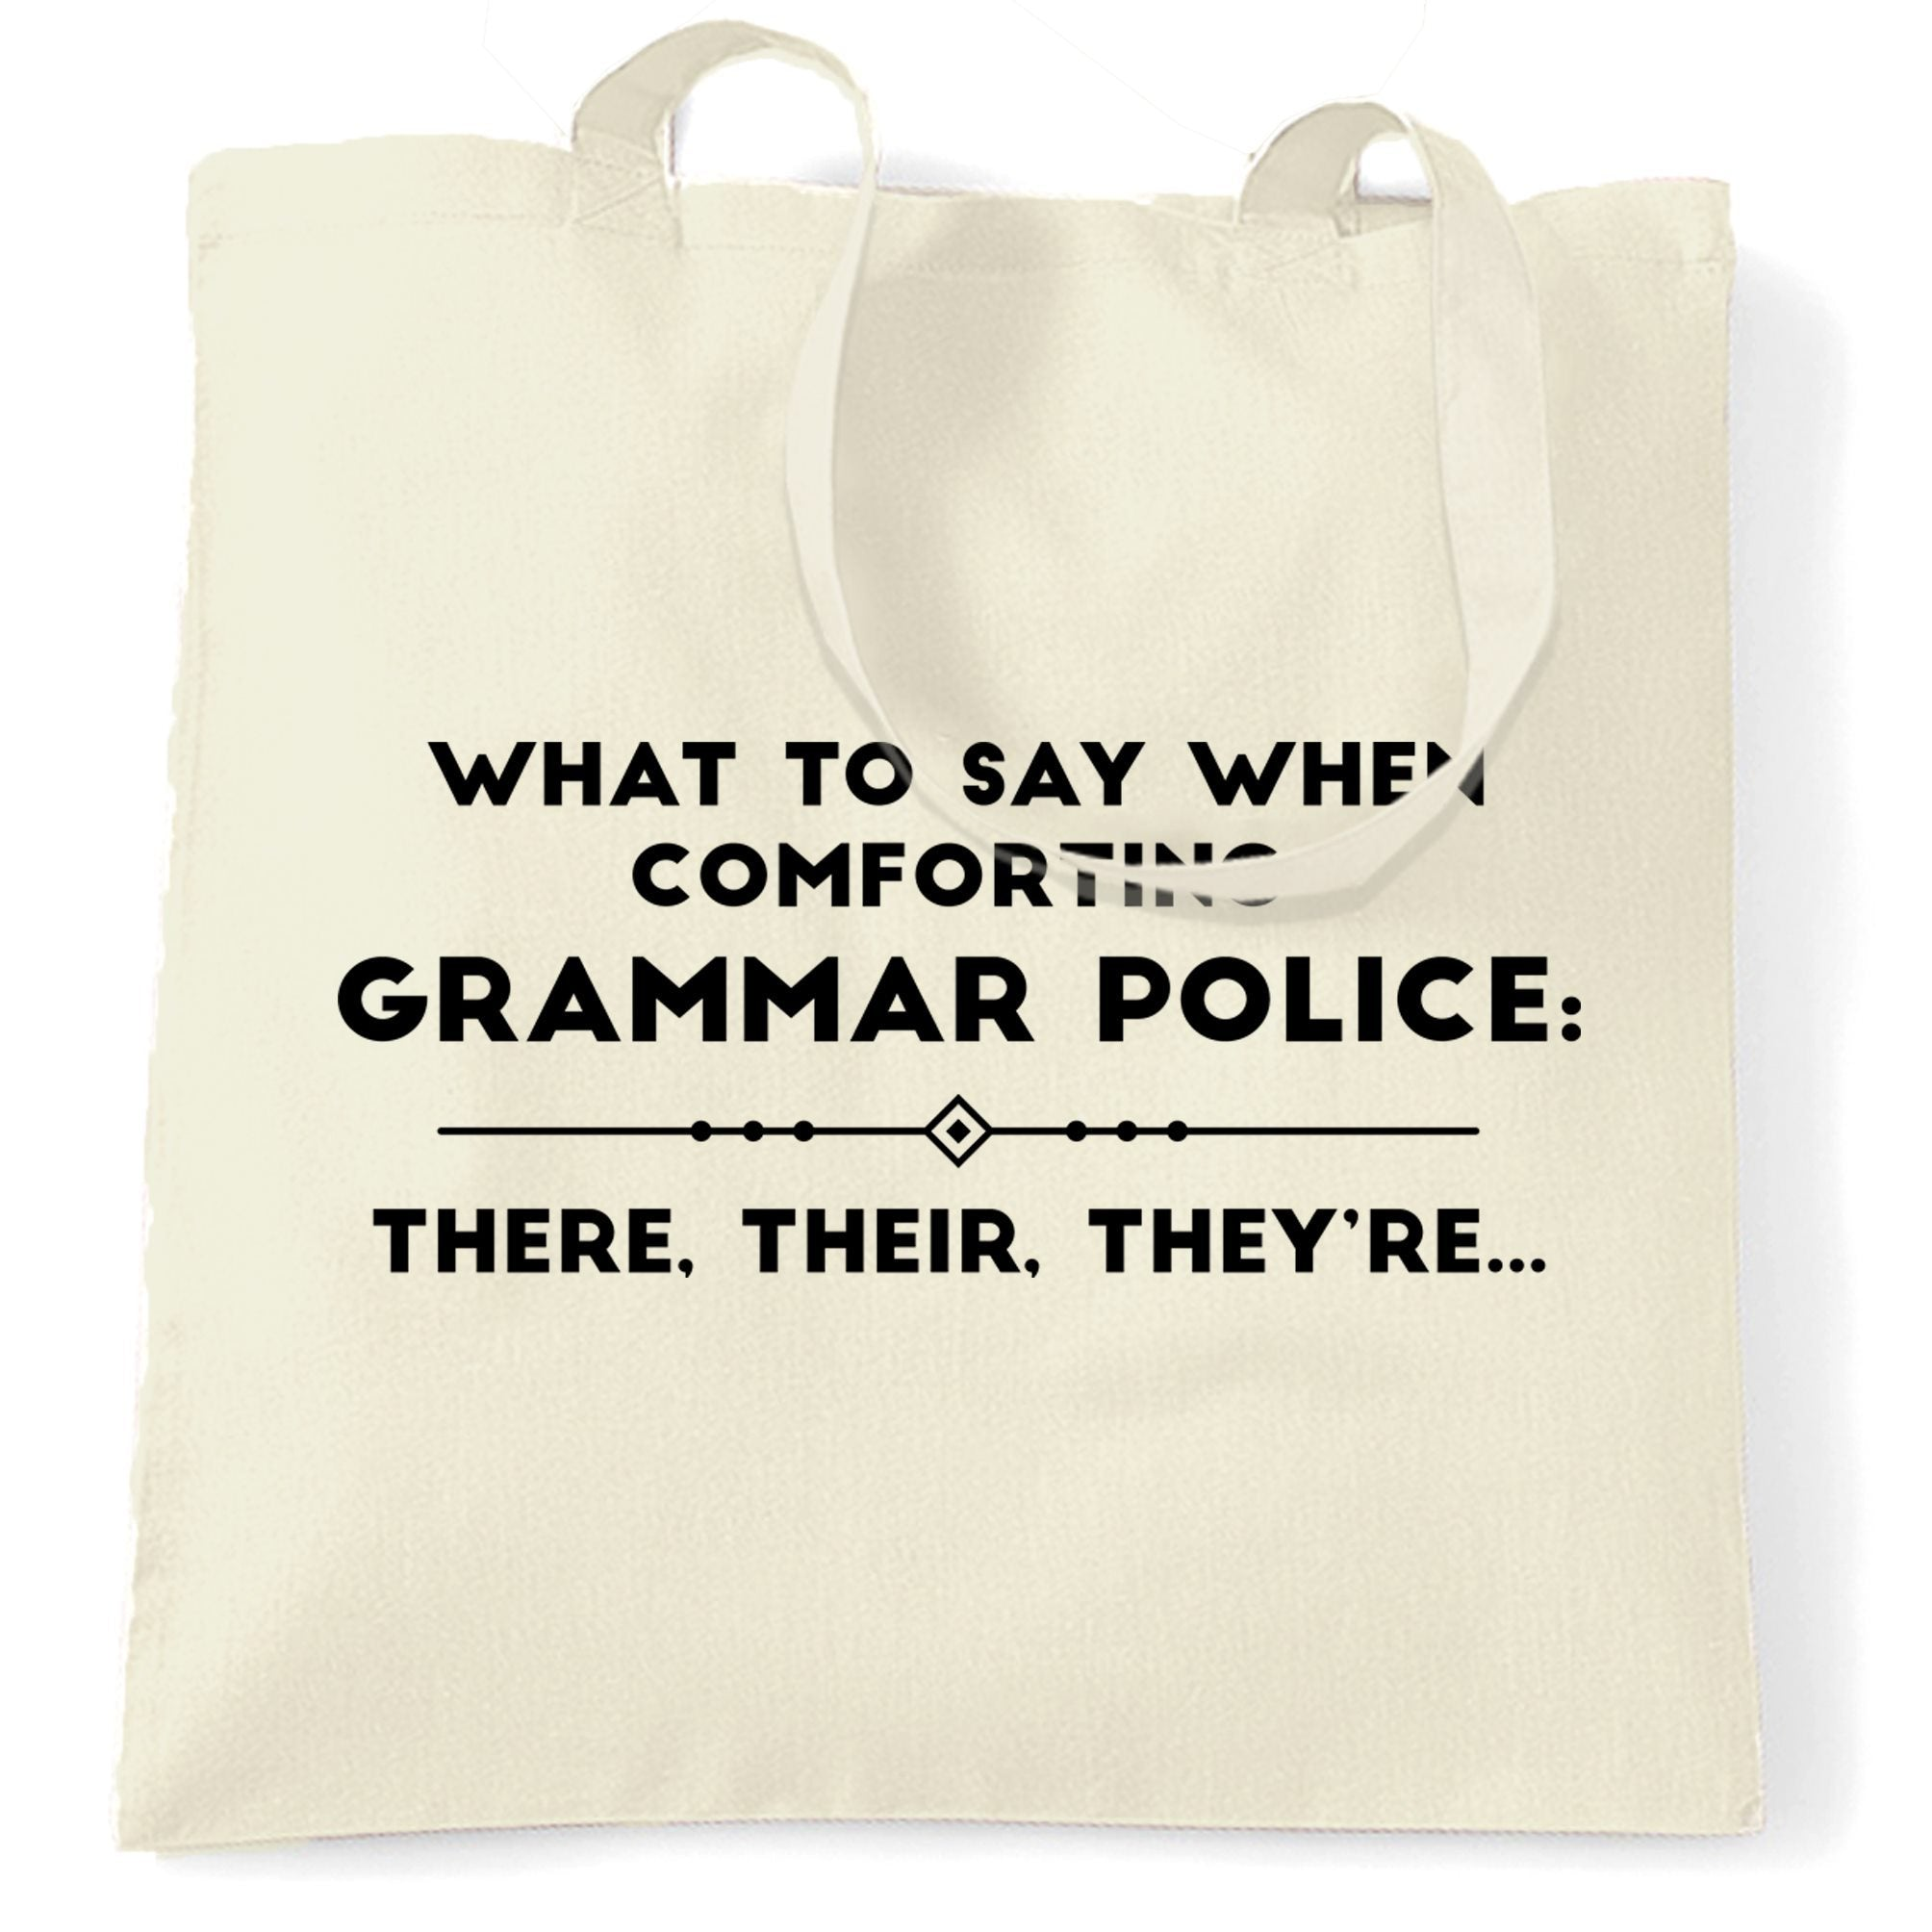 Pun Tote Bag What To Say When Comforting Grammar Police